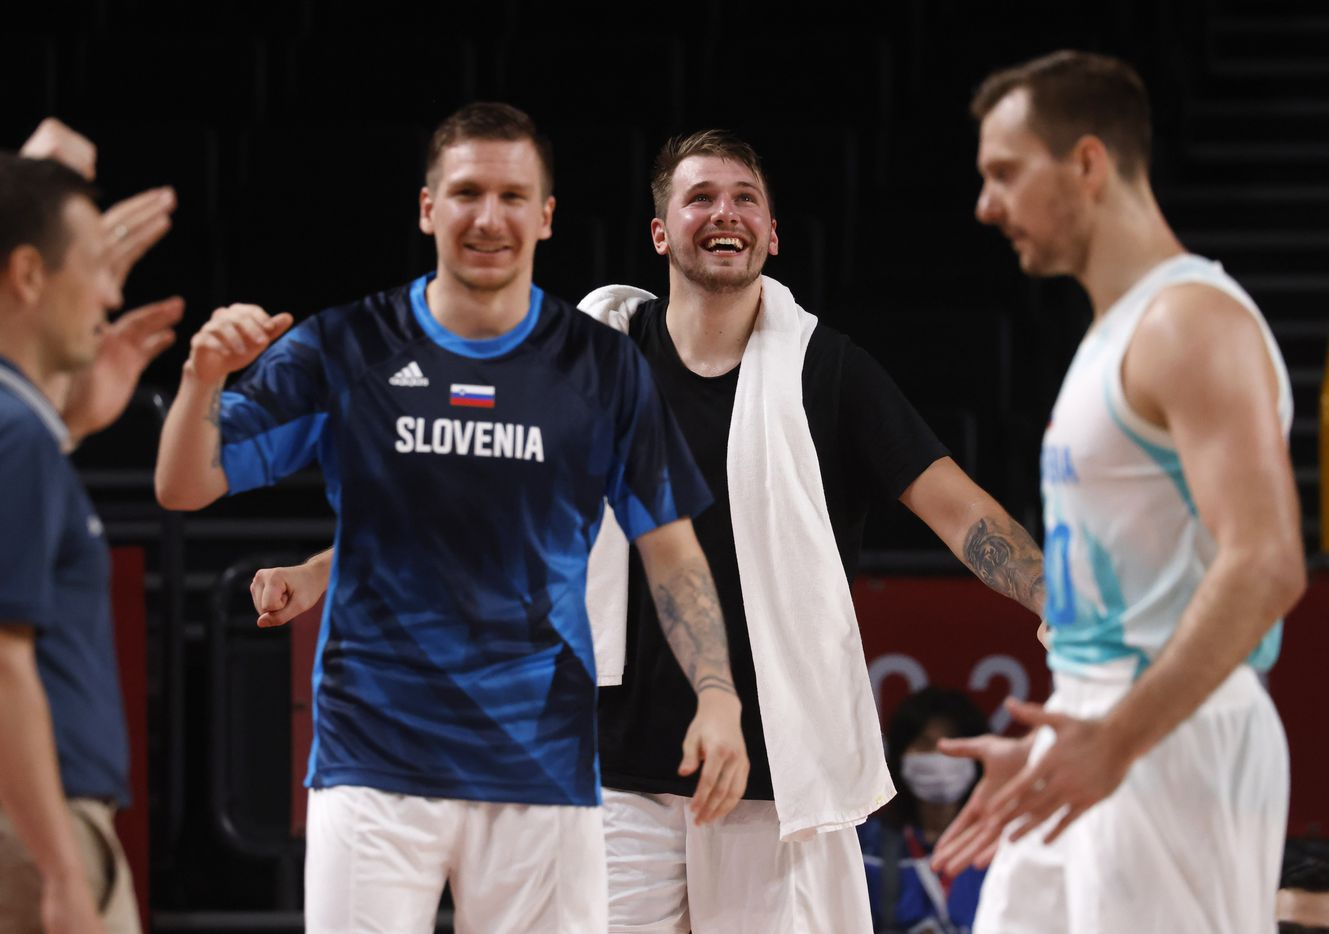 Slovenia's Luka Doncic (77) and teammates celebrate after a made basket in a game against Germany during the second half of play of a quarter final basketball game at the postponed 2020 Tokyo Olympics at Saitama Super Arena, on Tuesday, August 3, 2021, in Saitama, Japan. Slovenia defeated Germany's 94-70. (Vernon Bryant/The Dallas Morning News)